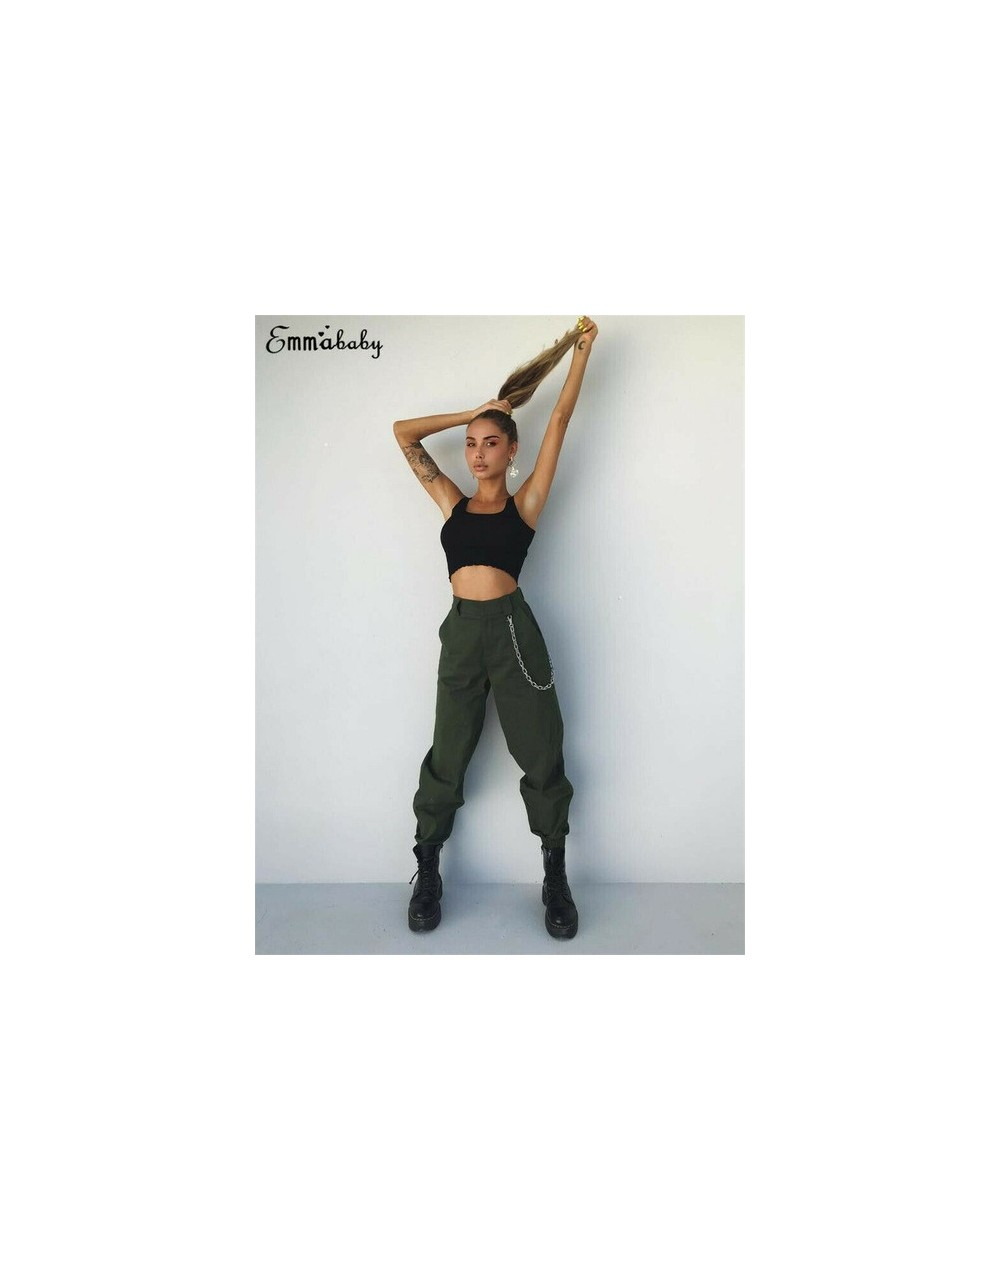 Fashion Womens Soild Cargo Trousers Casual Long Pencil Pants Military Army Combat Camouflage Capris - Army Green - 4I4116727...